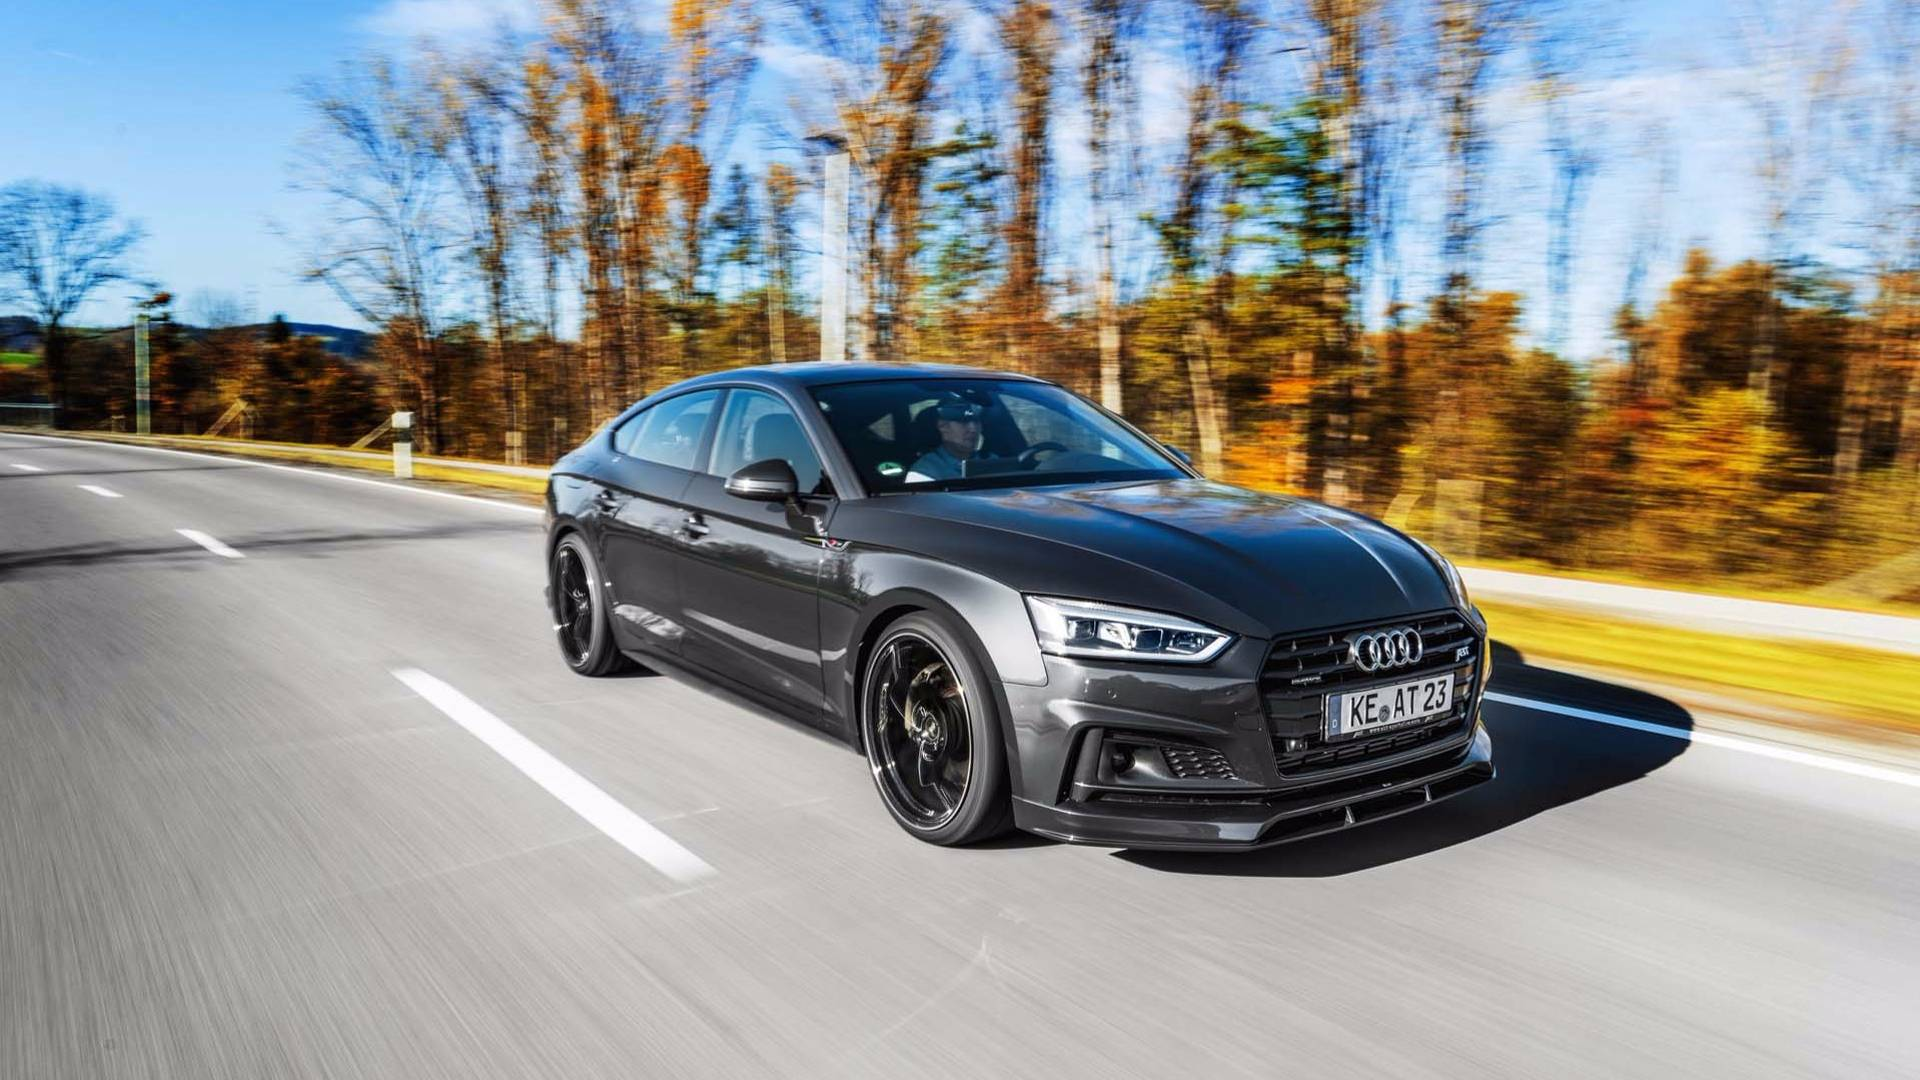 audi s5 gets 425 hp body kit from abt autoevolution. Black Bedroom Furniture Sets. Home Design Ideas